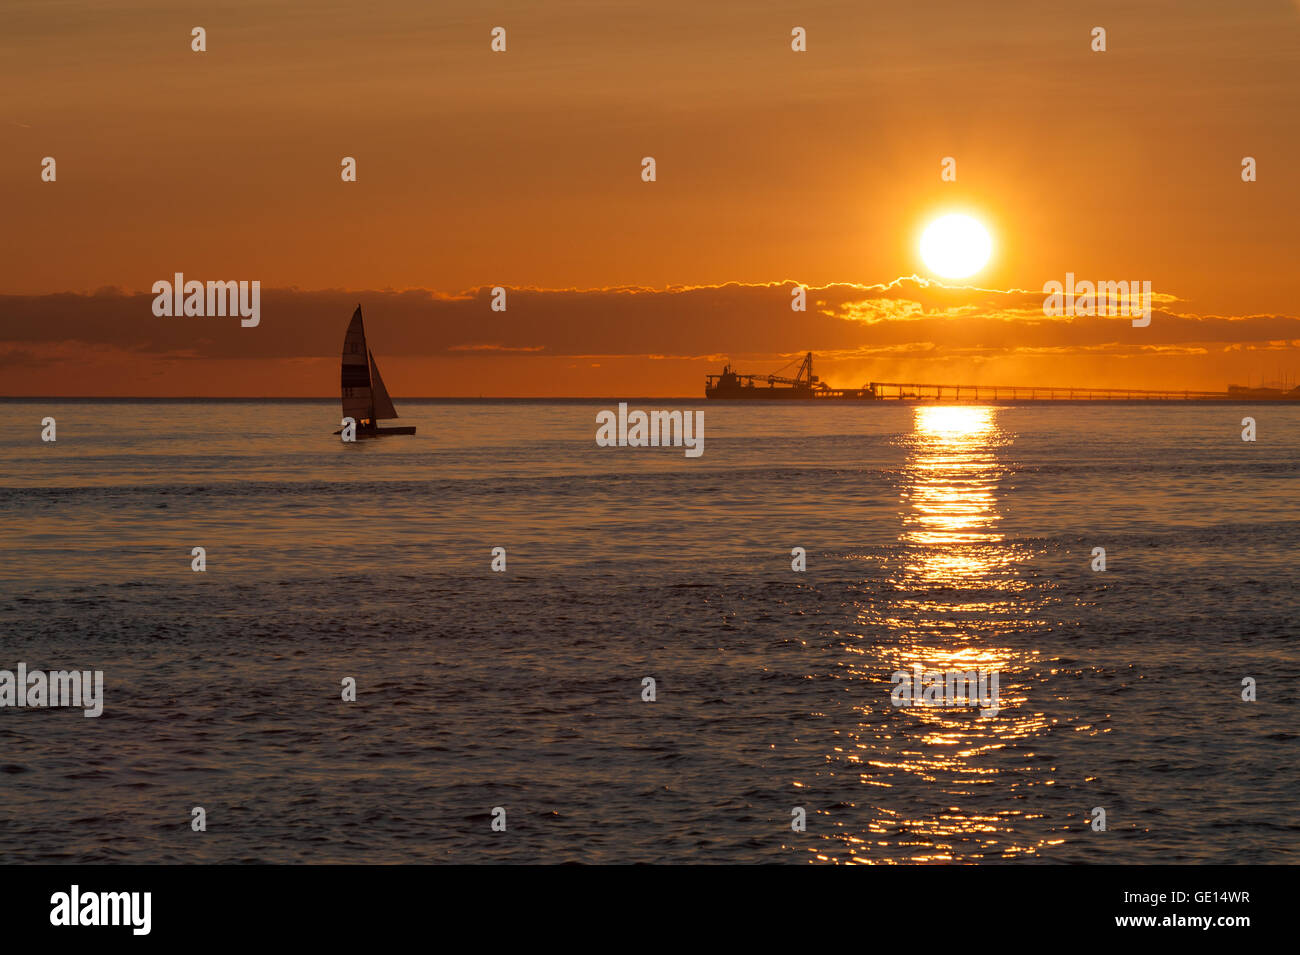 sail boat and ship silhouette at sunset on Pacific ocean at Point Roberts, Washington state, USA - Stock Image